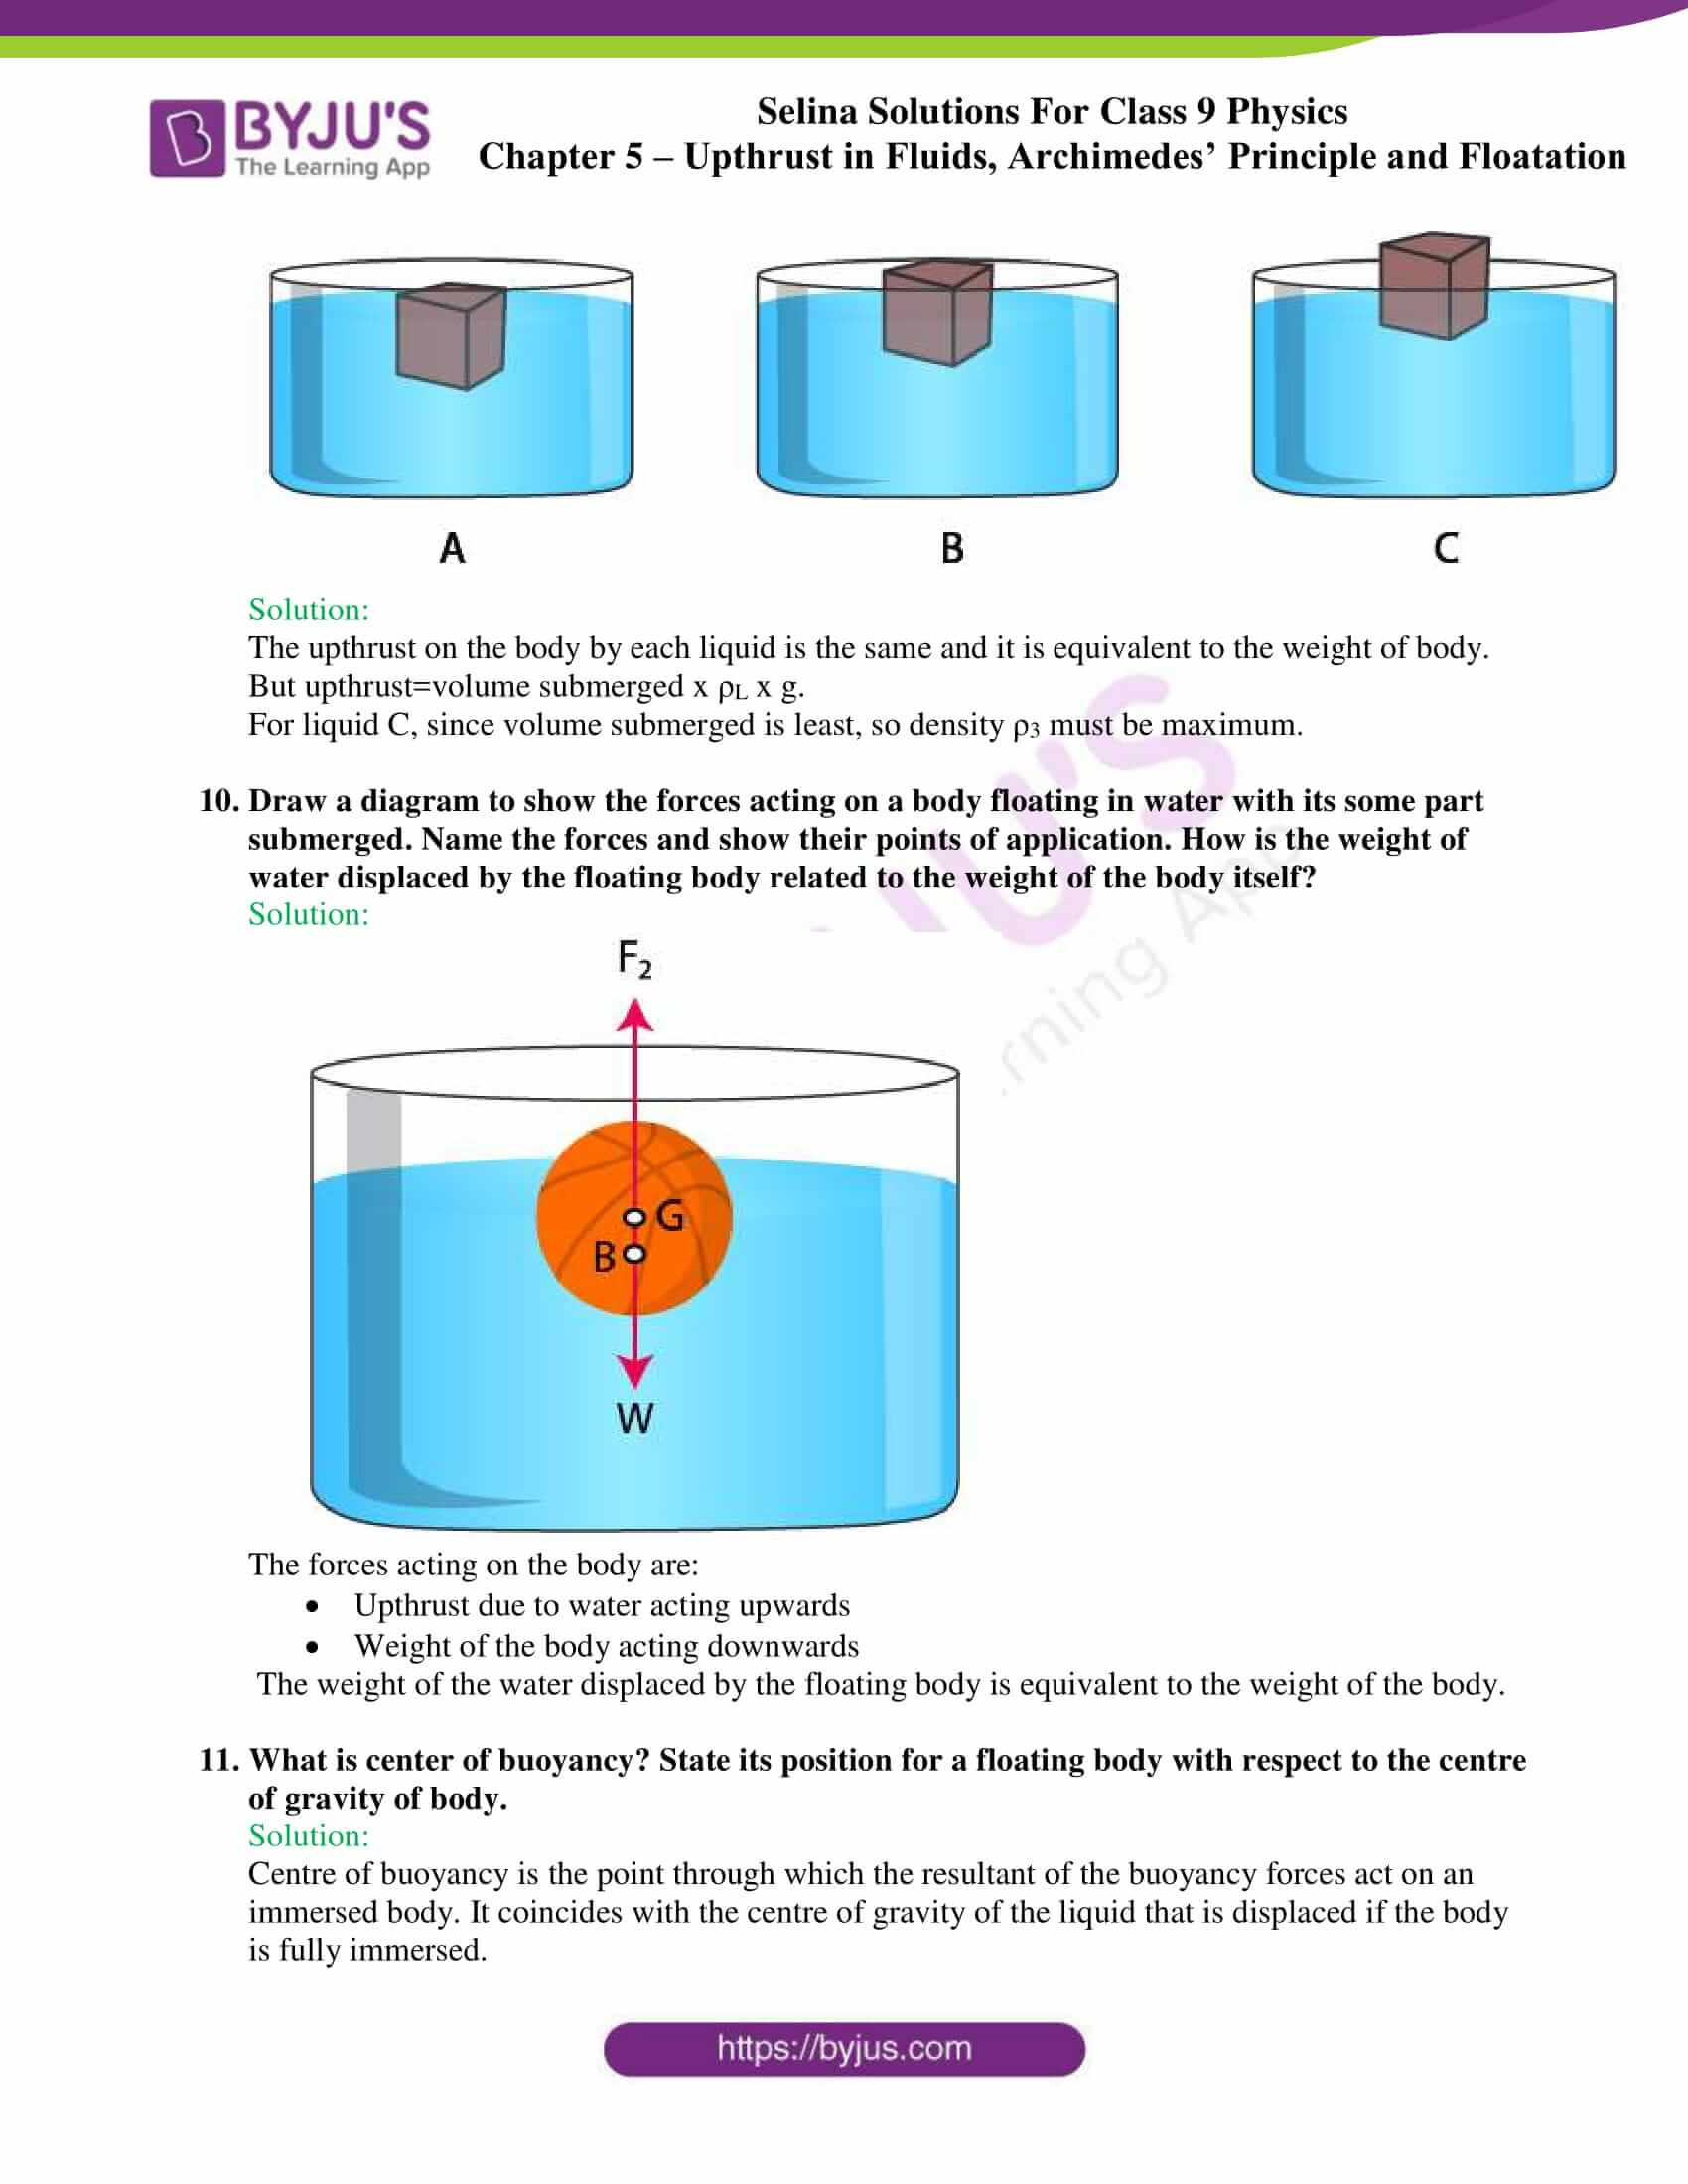 selina solutions class 9 physics chapter 5 part 25